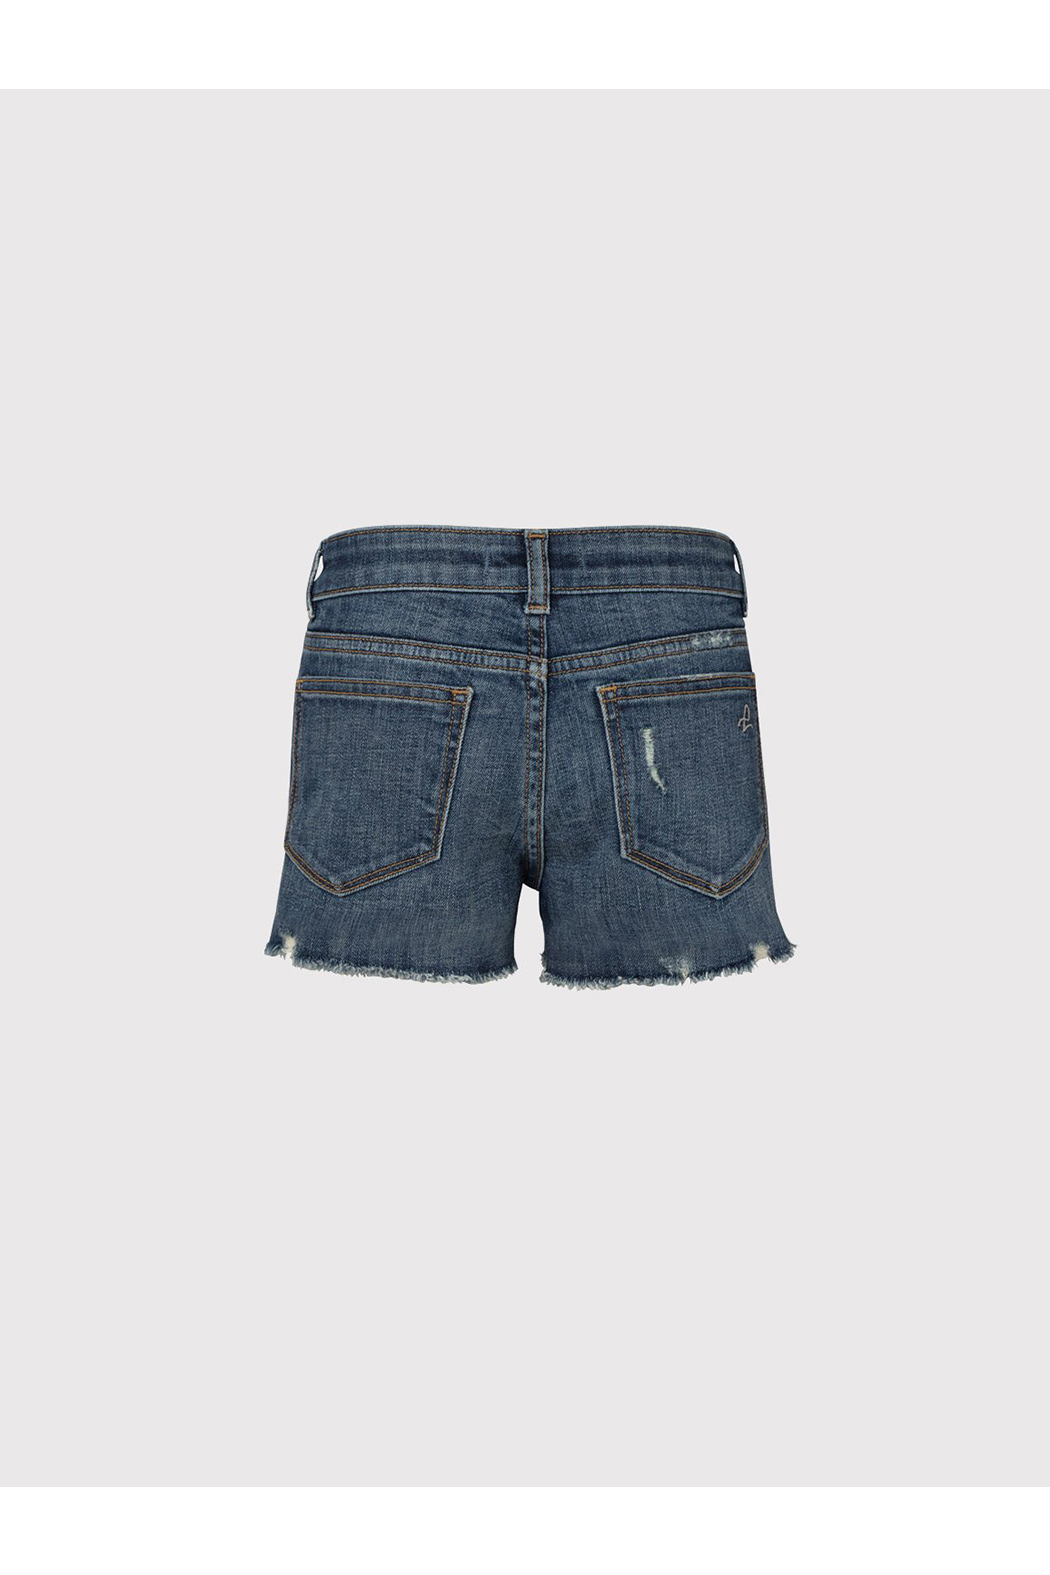 DL1961 Lucy Youth Denim Shorts - Front Full Image